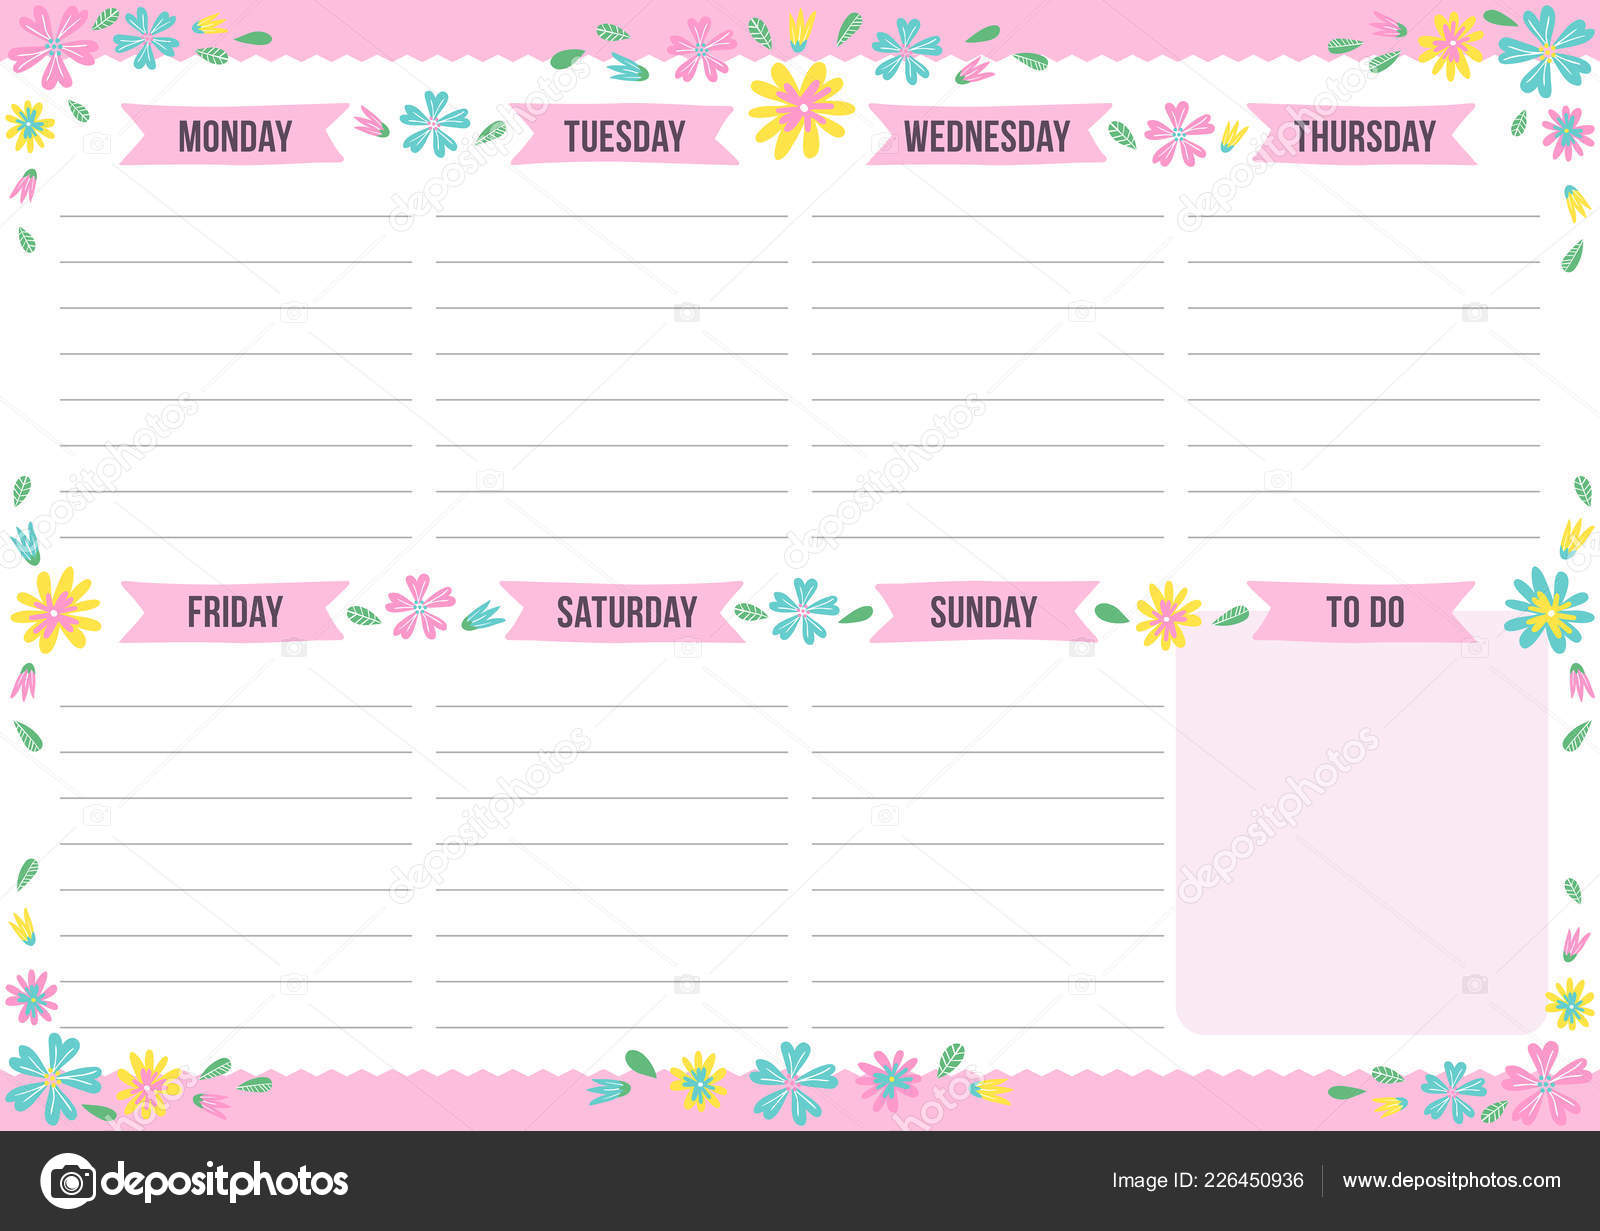 image regarding Cute Weekly Planners named Lovely Weekly Planner Drawn Flower Template Spot Notes Vector